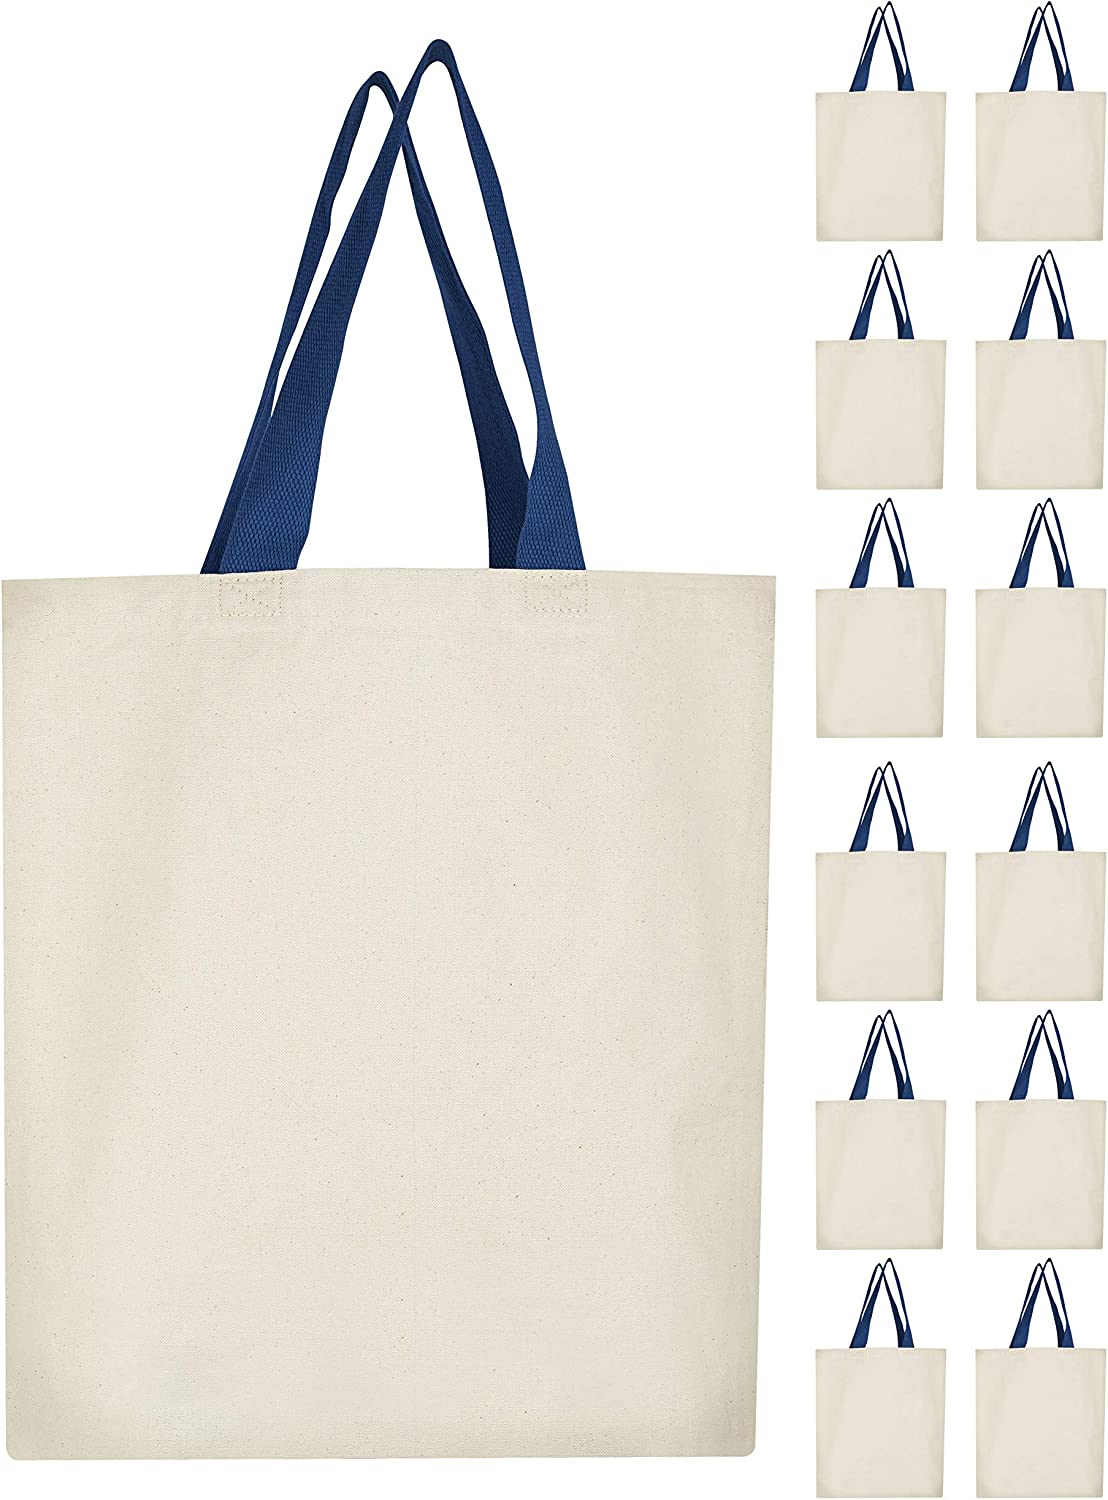 12Oz Canvas Tote Bag - 15x15 3 Multi-pur Inches Sale SALE% OFF Superior with Gusset Inch